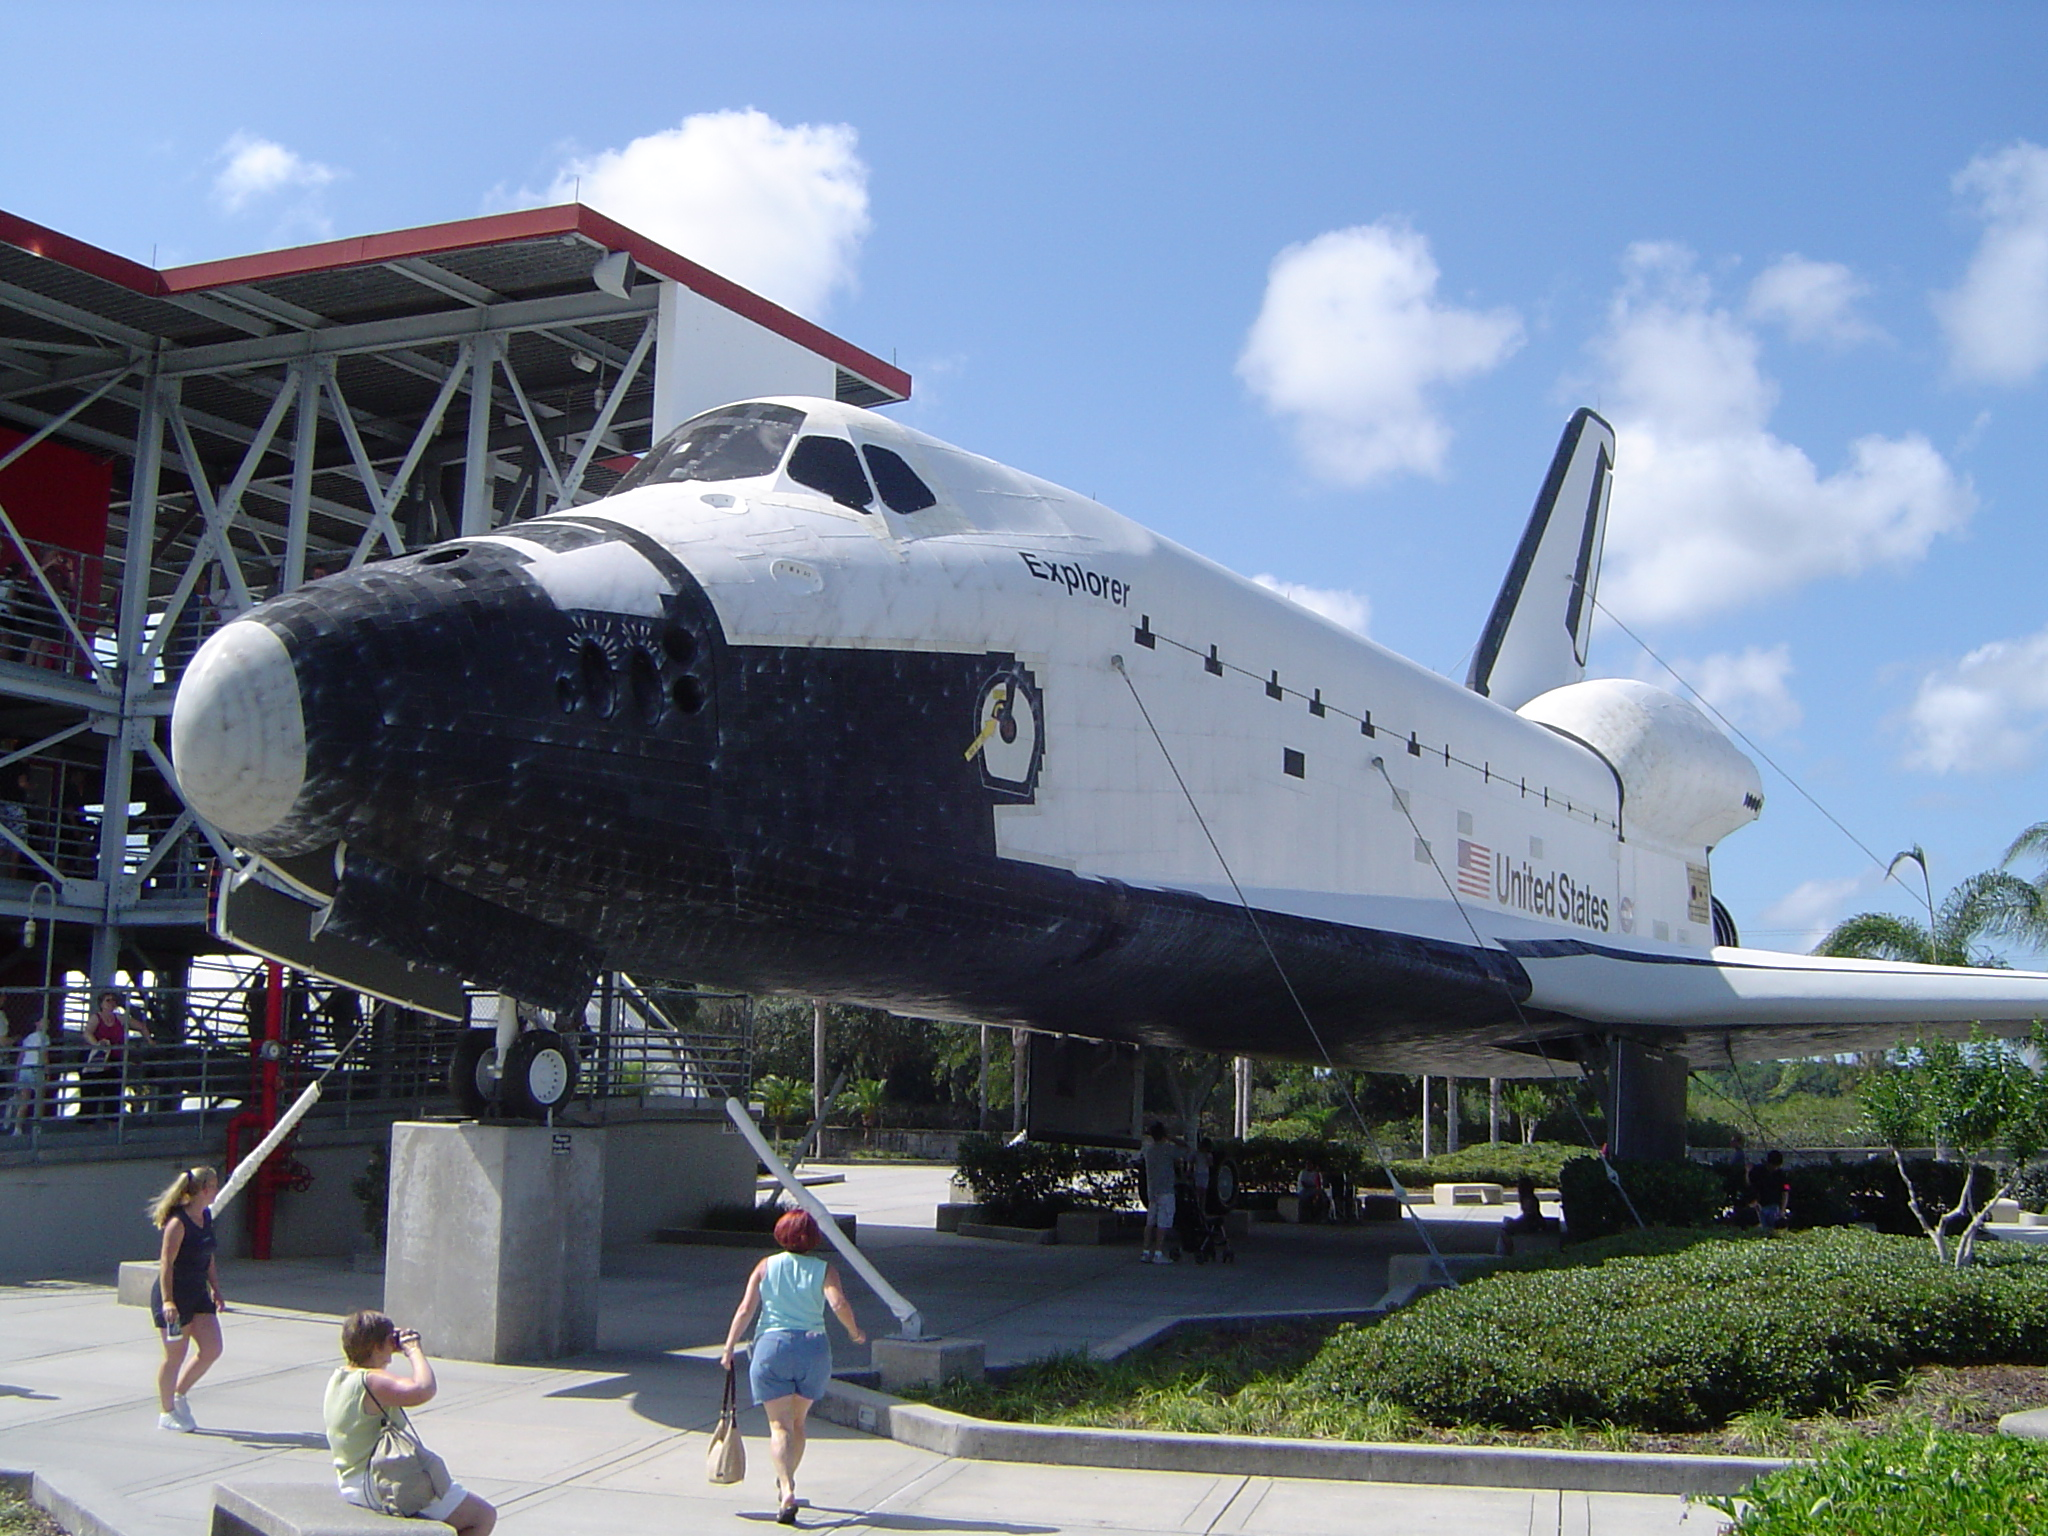 space shuttle kennedy - photo #12